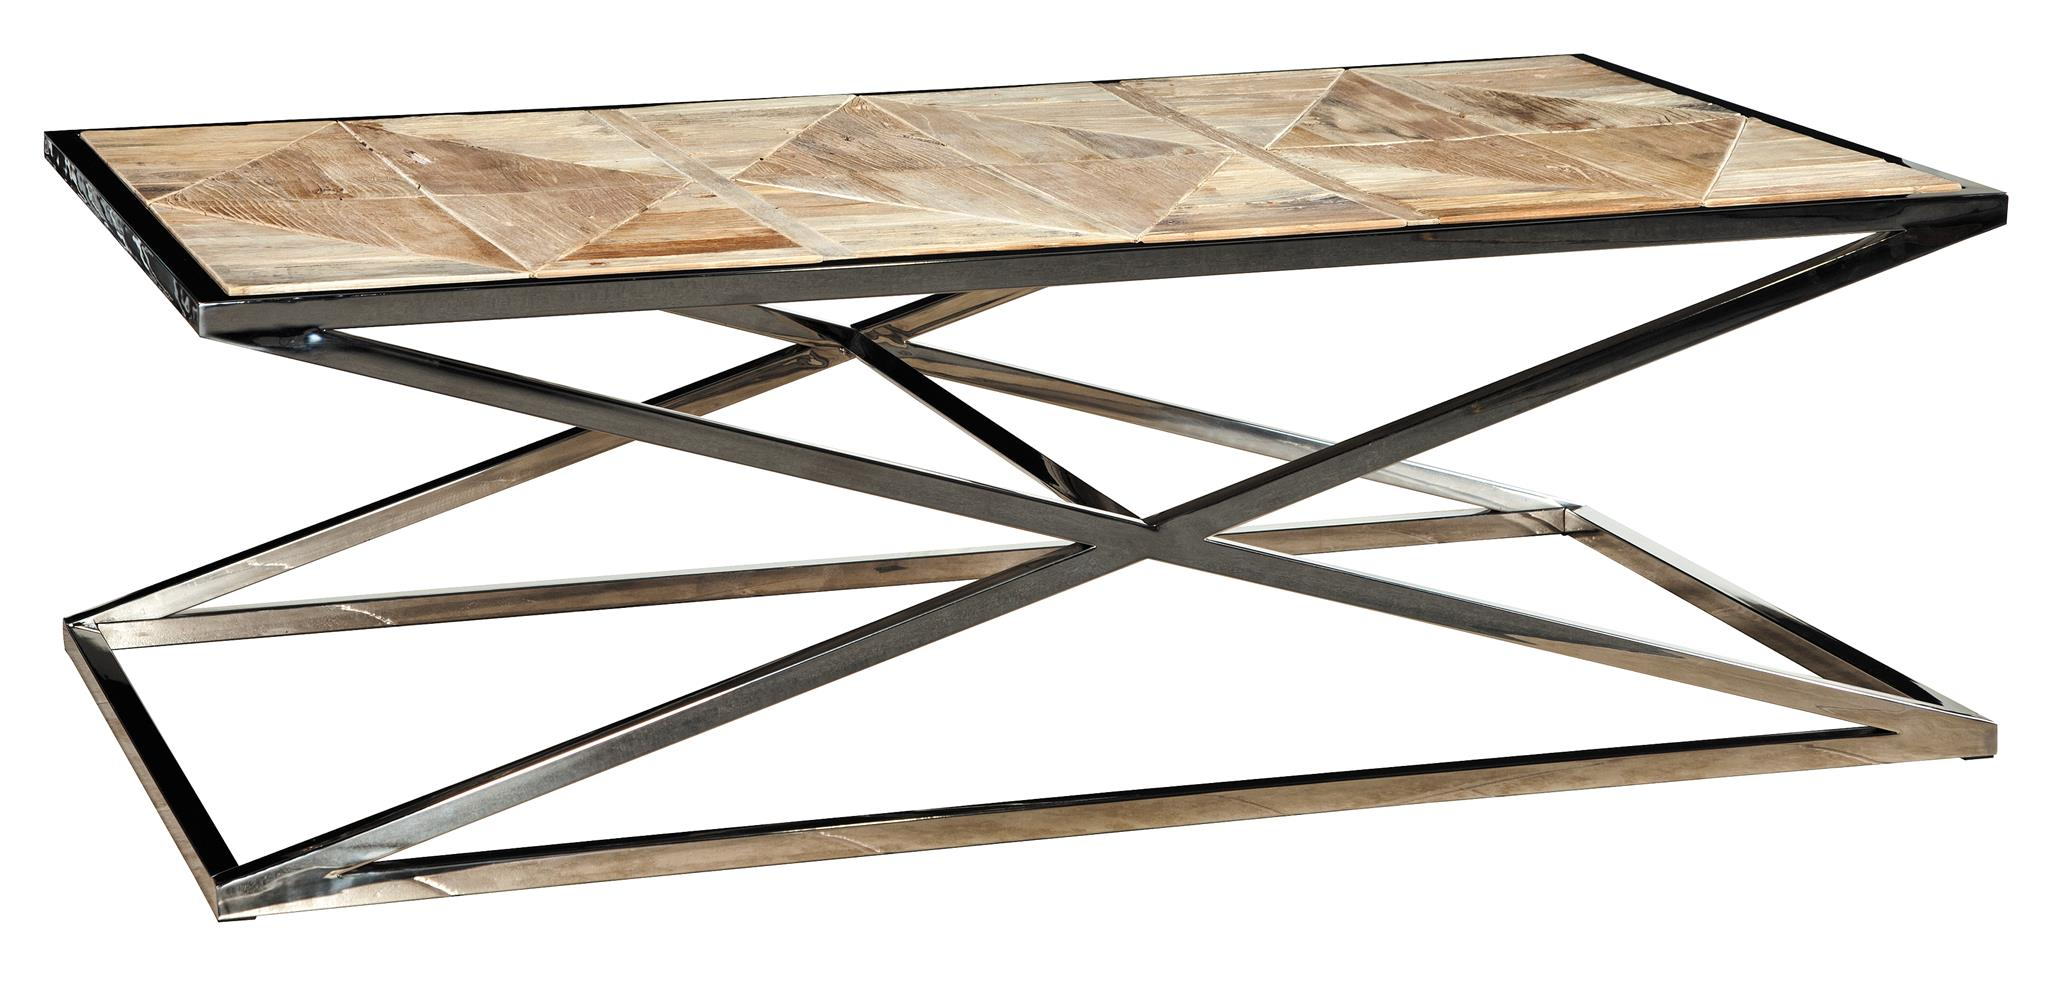 Brass & Strap Leather Coffee Table